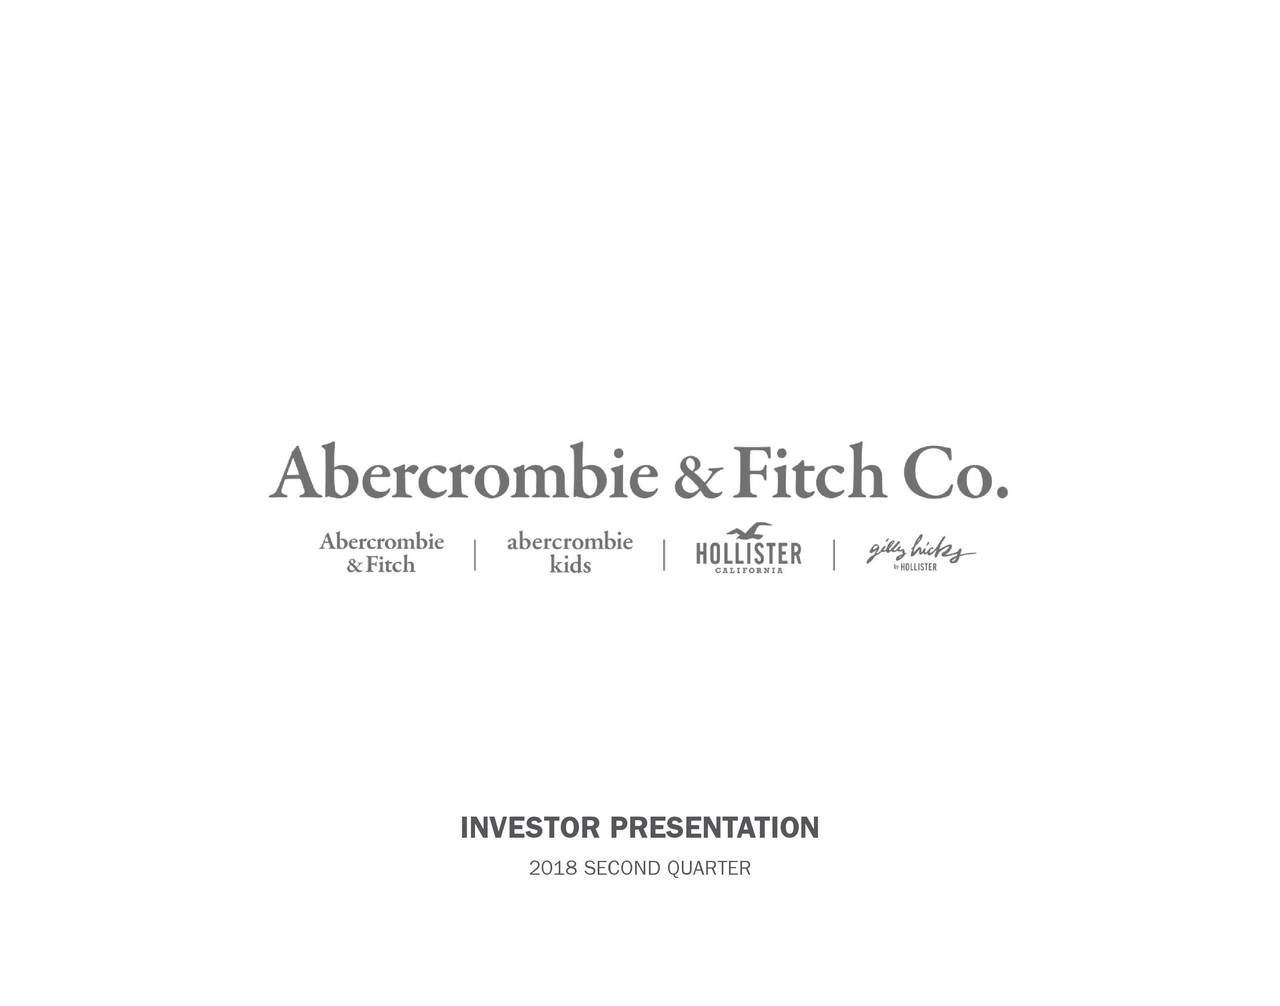 Abercrombie Fitch 2018 Q2 Results Earnings Call Slides